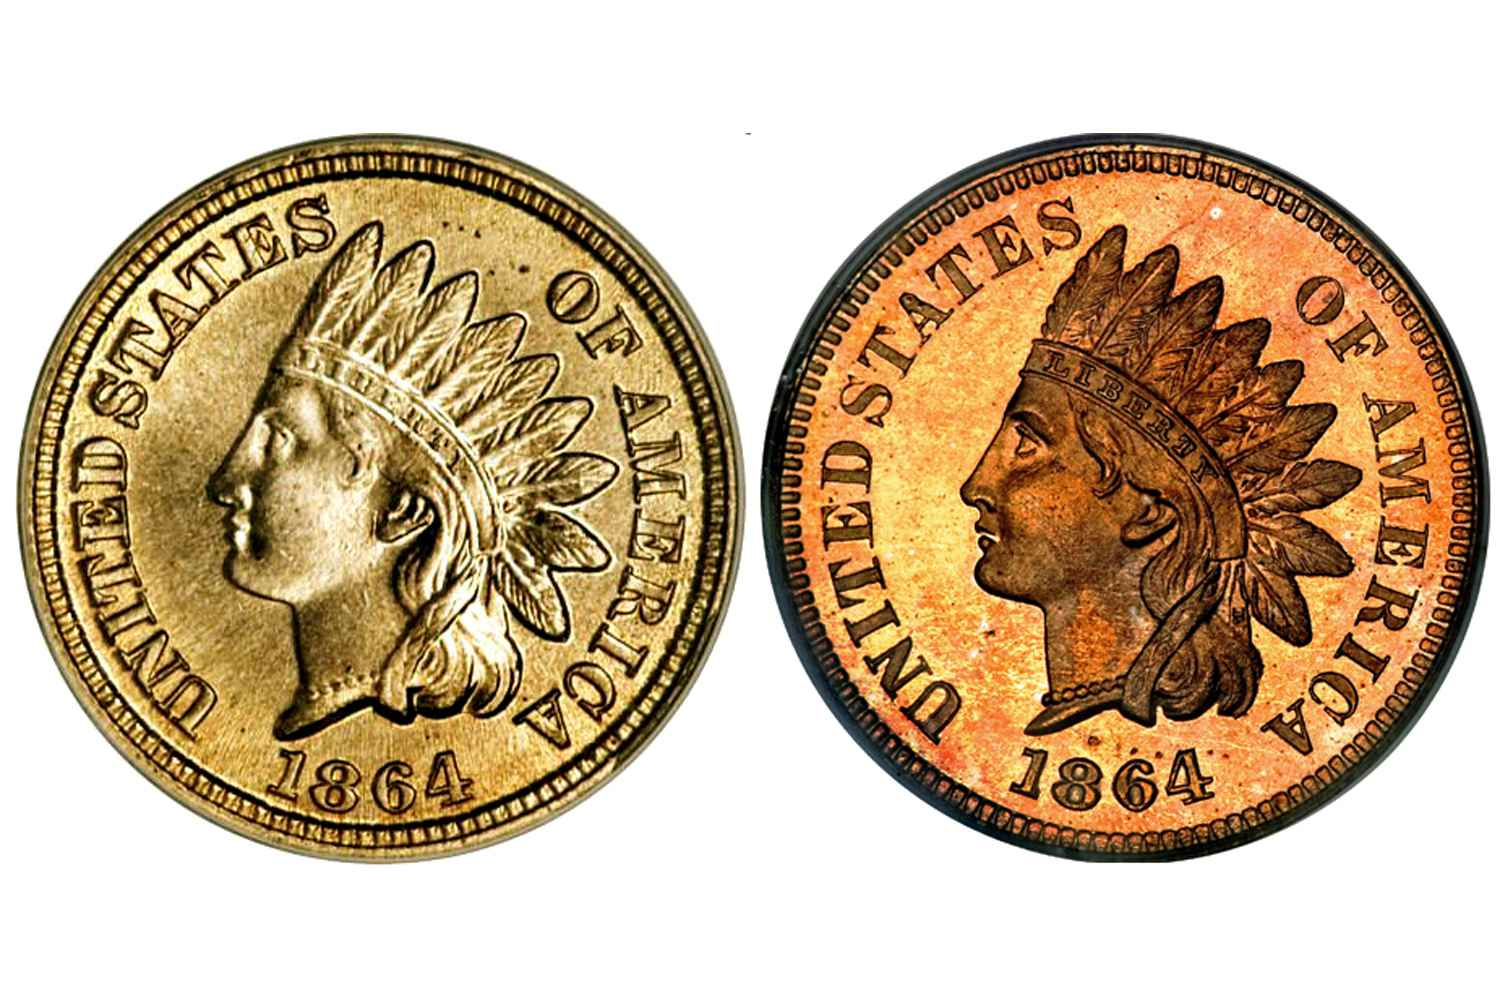 Indian Head Penny Copper Nickel Versus Bronze